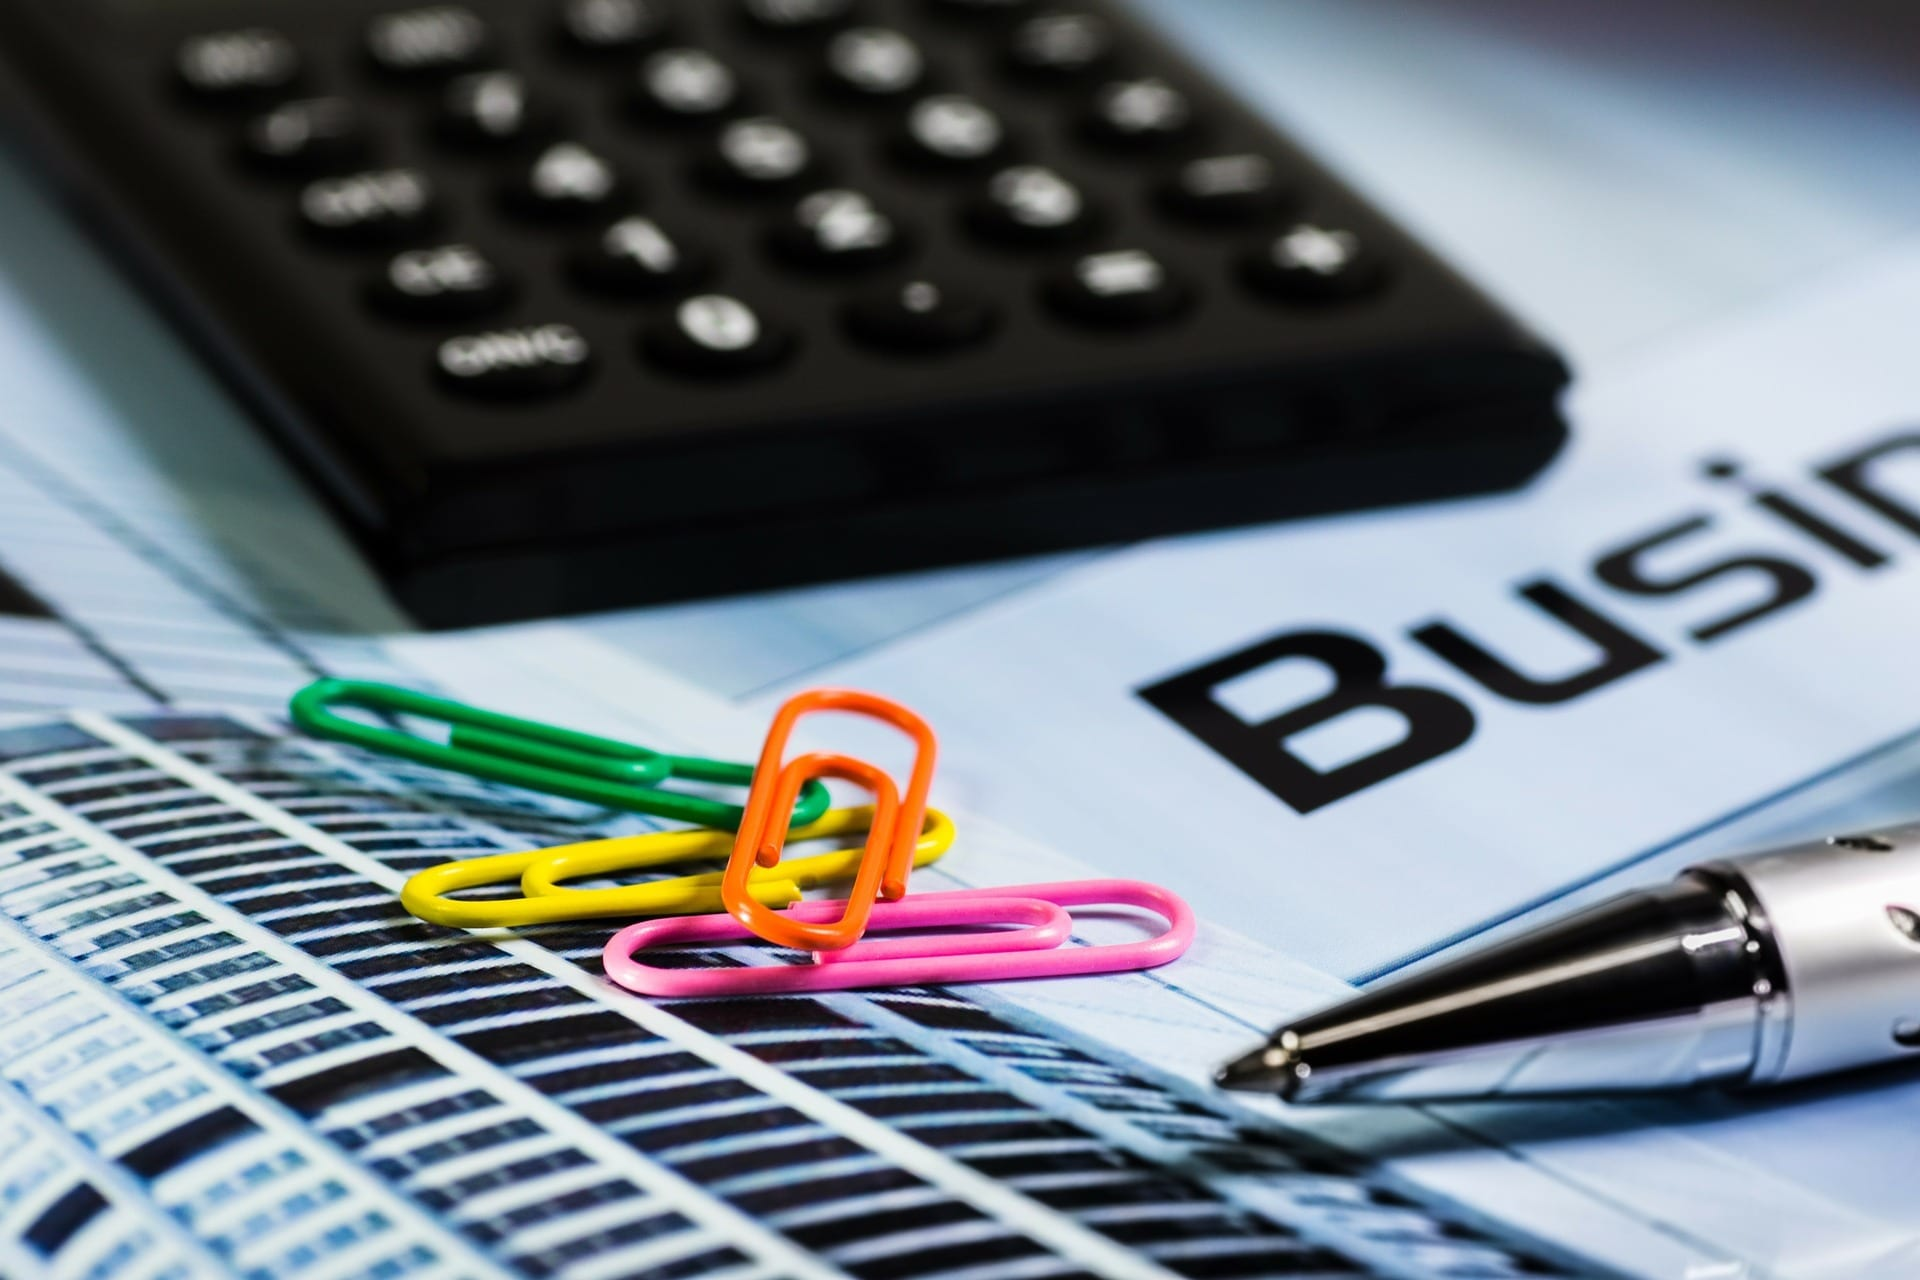 Brightly colored paper clips with business papers, calculator, and pen; image by Alexander Stein, via Pixabay.com, CC0.